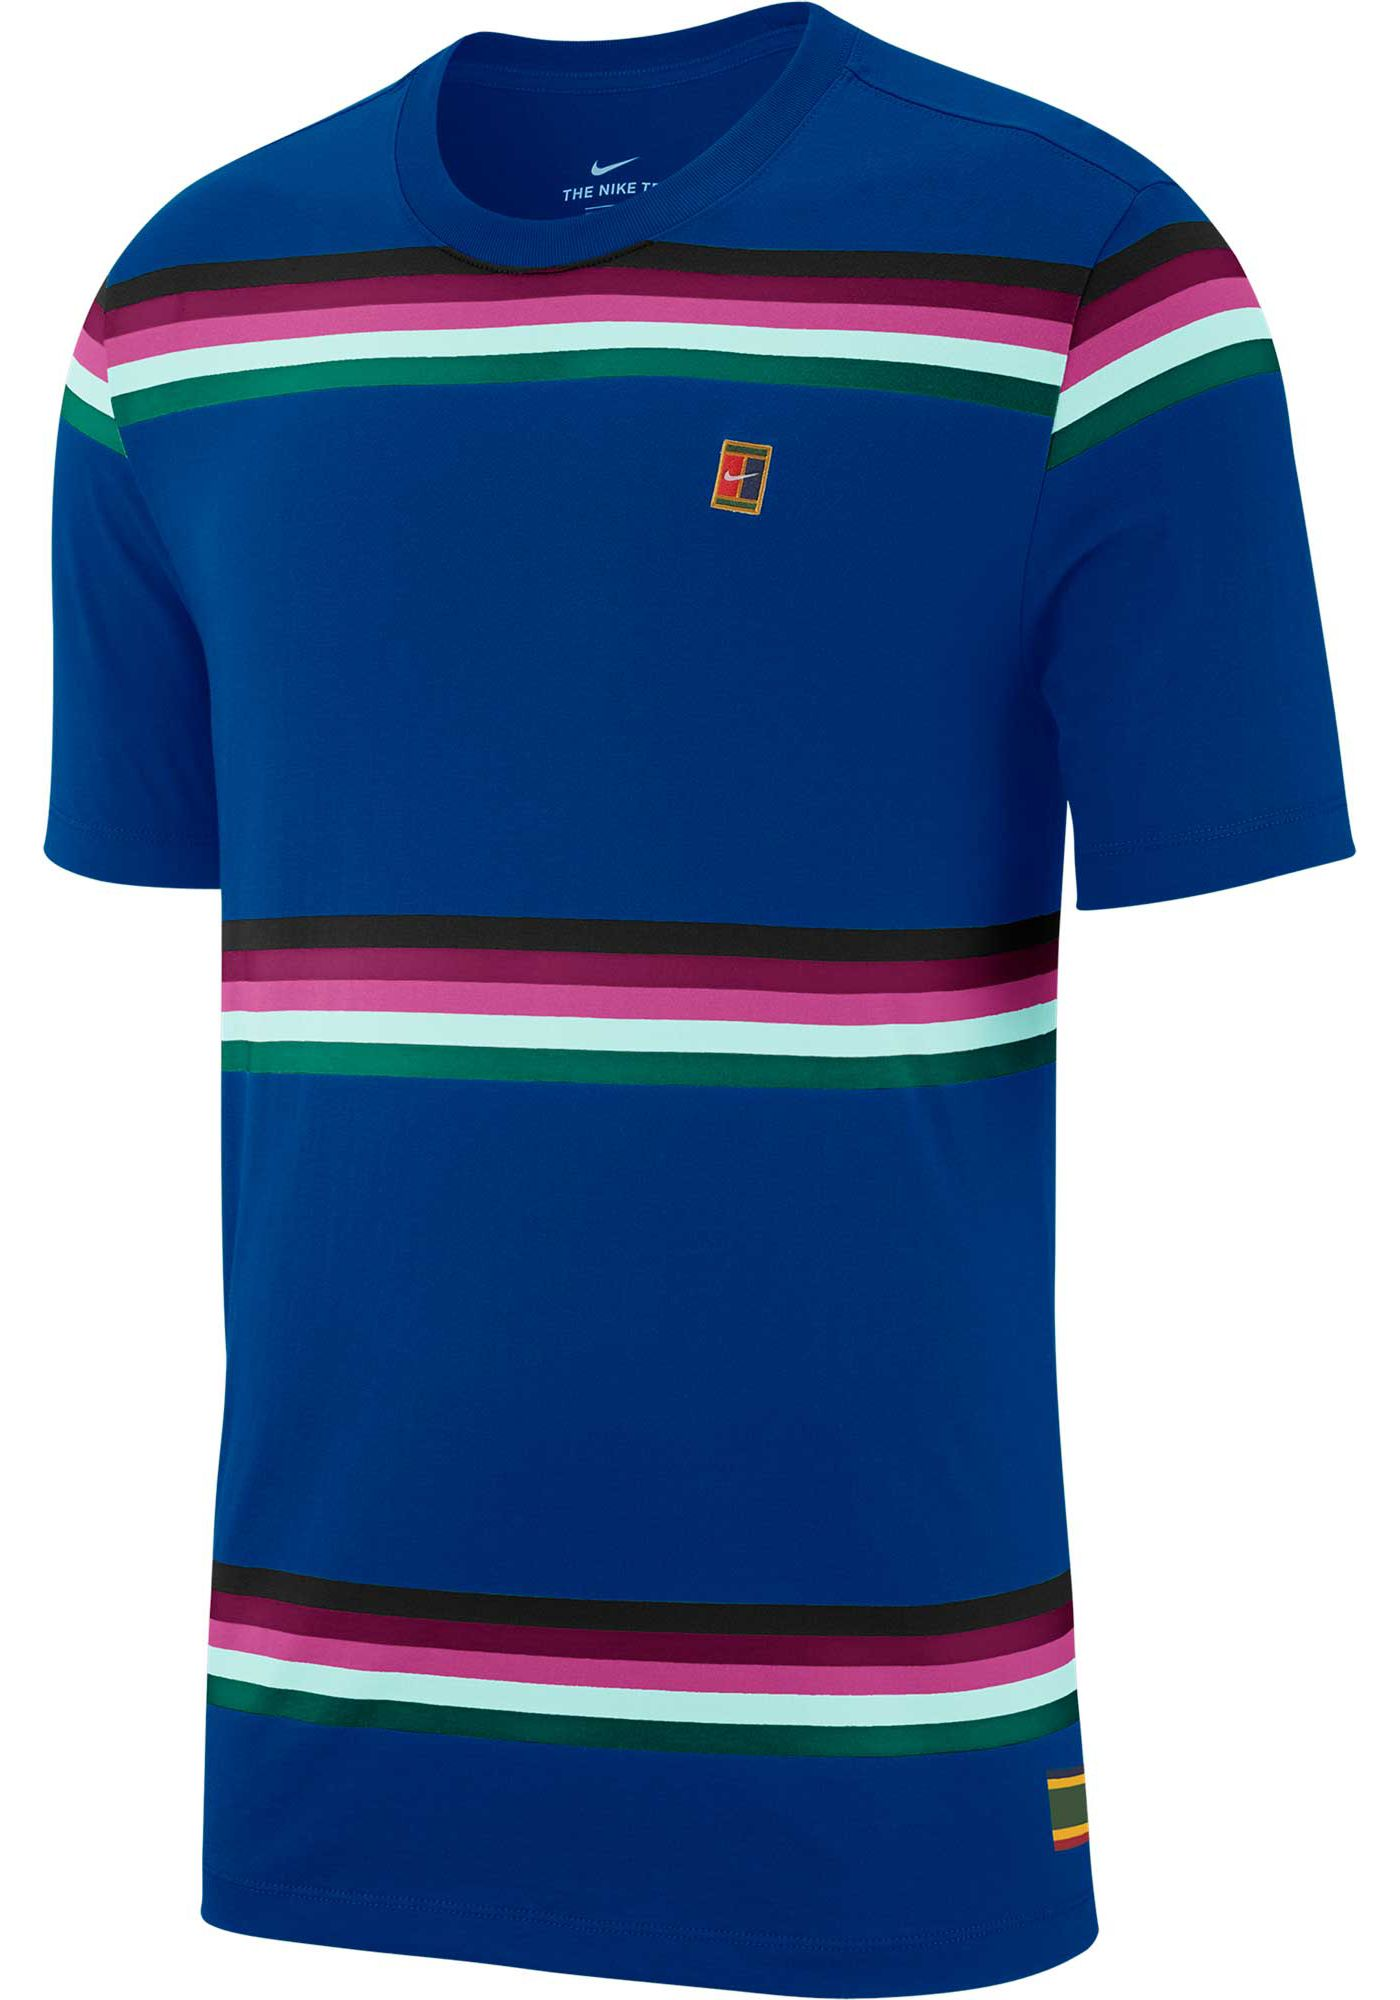 Nike Men's NikeCourt Striped Tennis Shirt